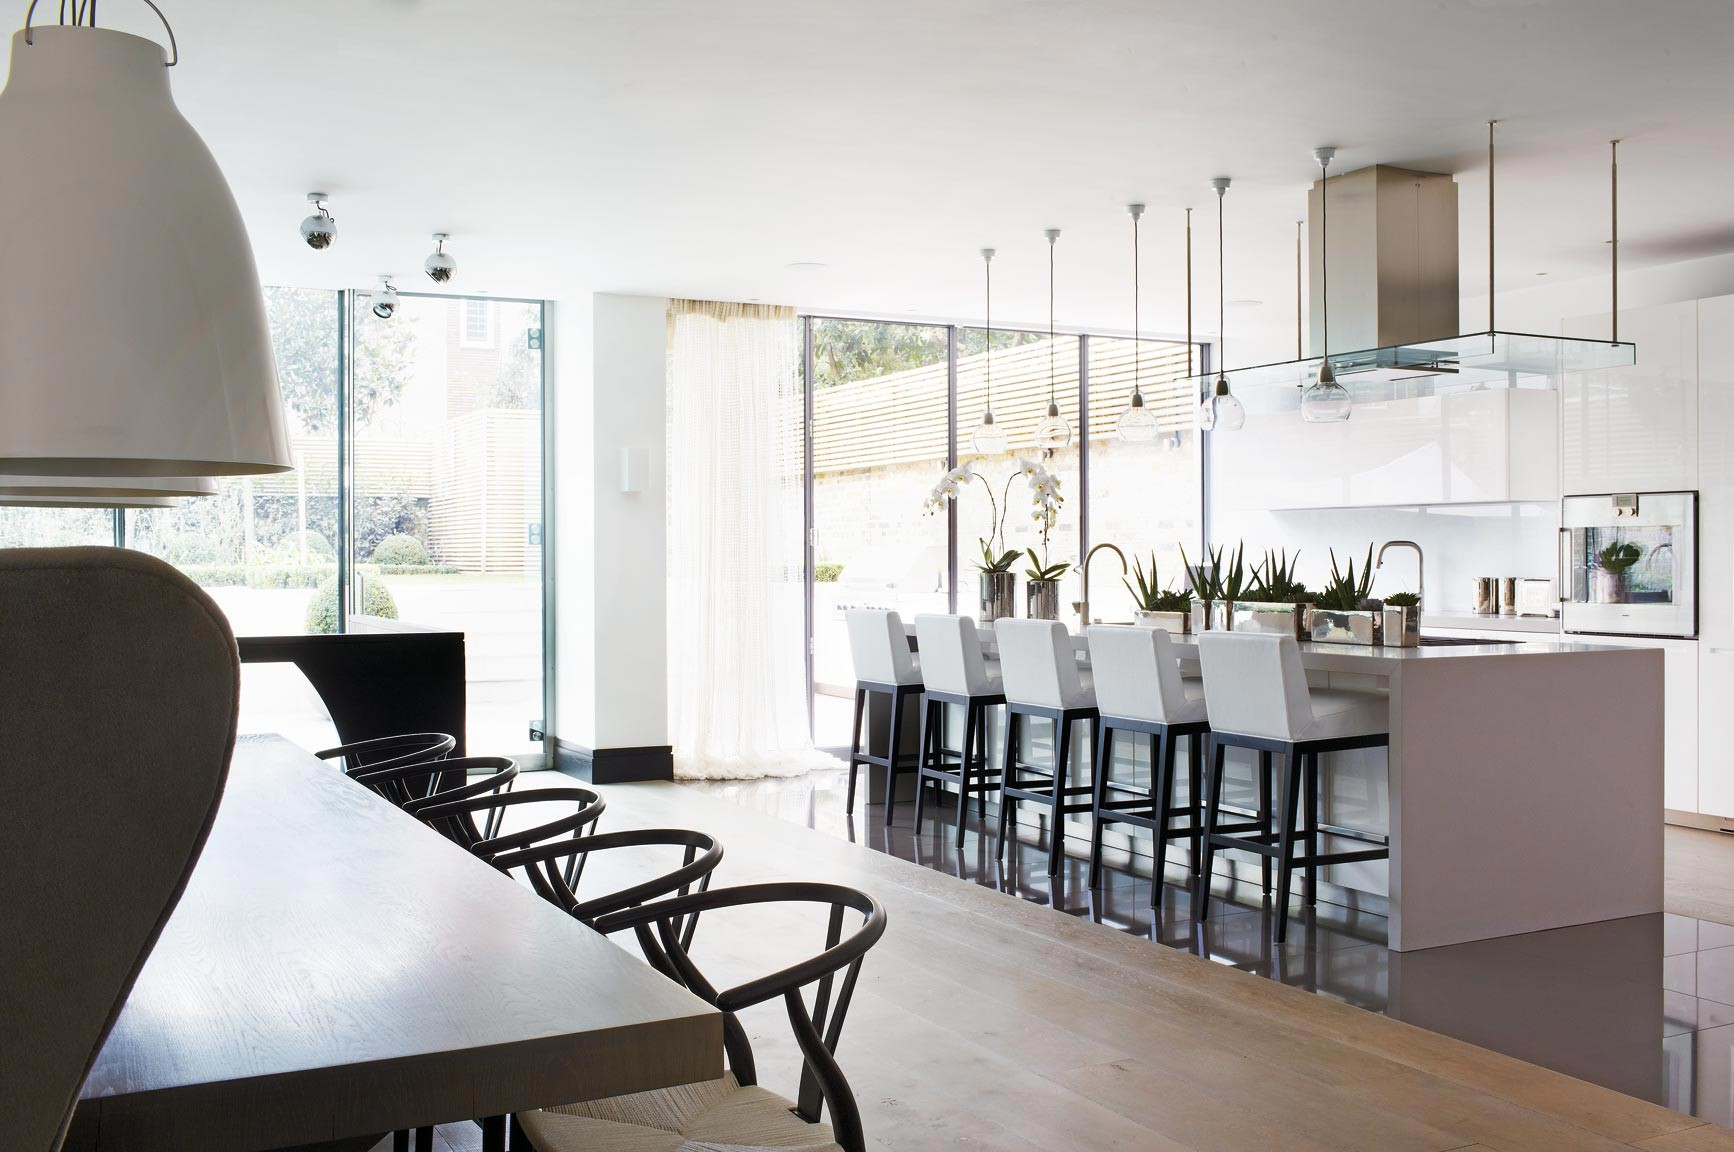 Family home london - modern design kitchen kelly hoppen Top 10 Kelly Hoppen Design Ideas the family home london2